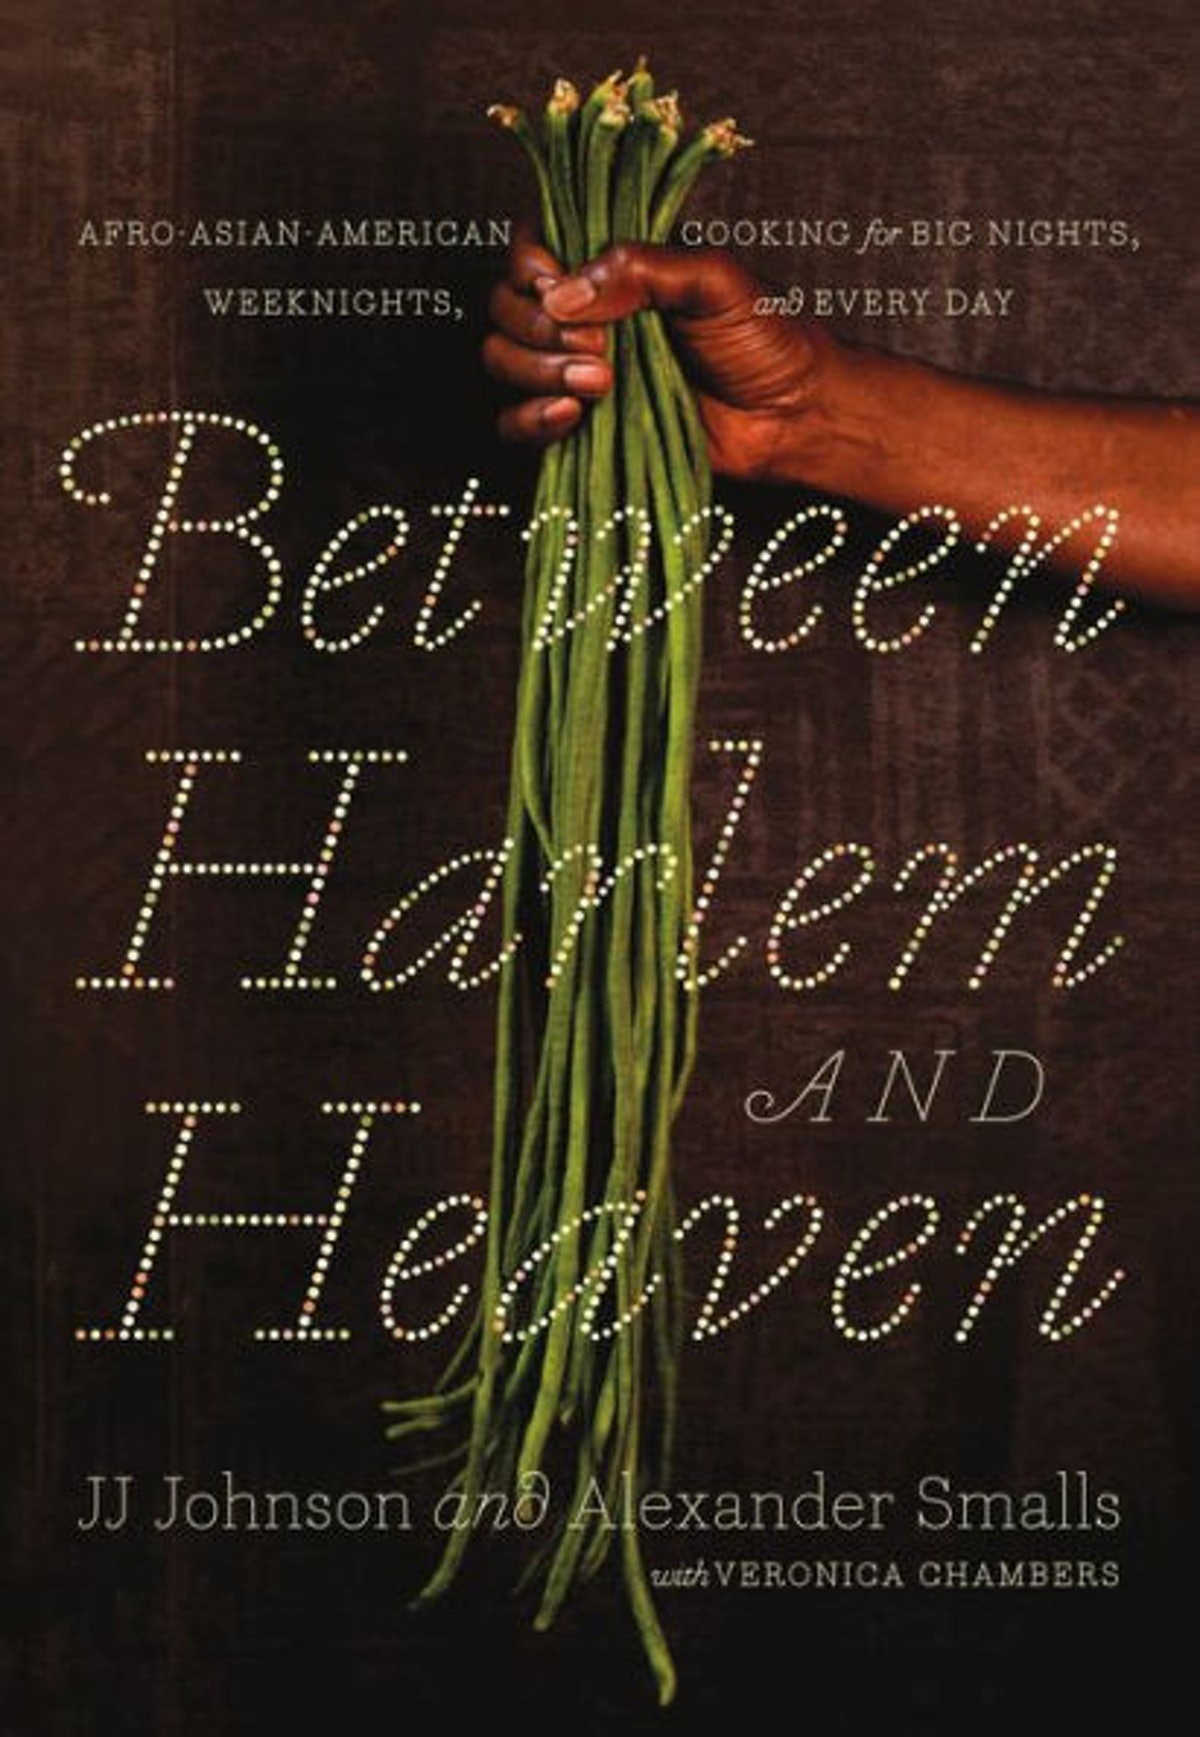 'Between Harlem and Heaven: Afro-Asian-American Cooking for Big Nights, Weeknights, and Every Day' by Alexander Smalls and J. J. Johnson with Veronica Chambers